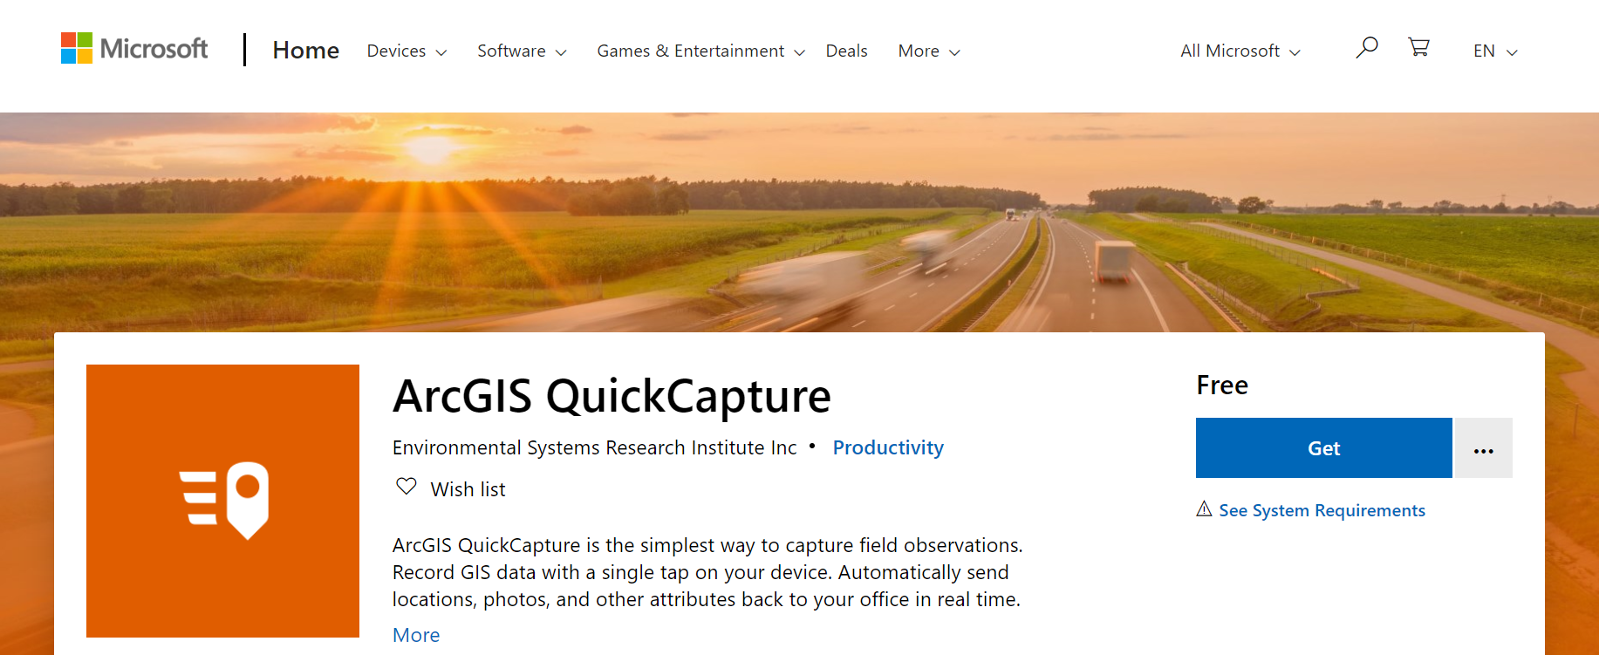 ArcGIS QuickCapture Microsoft Store Listing